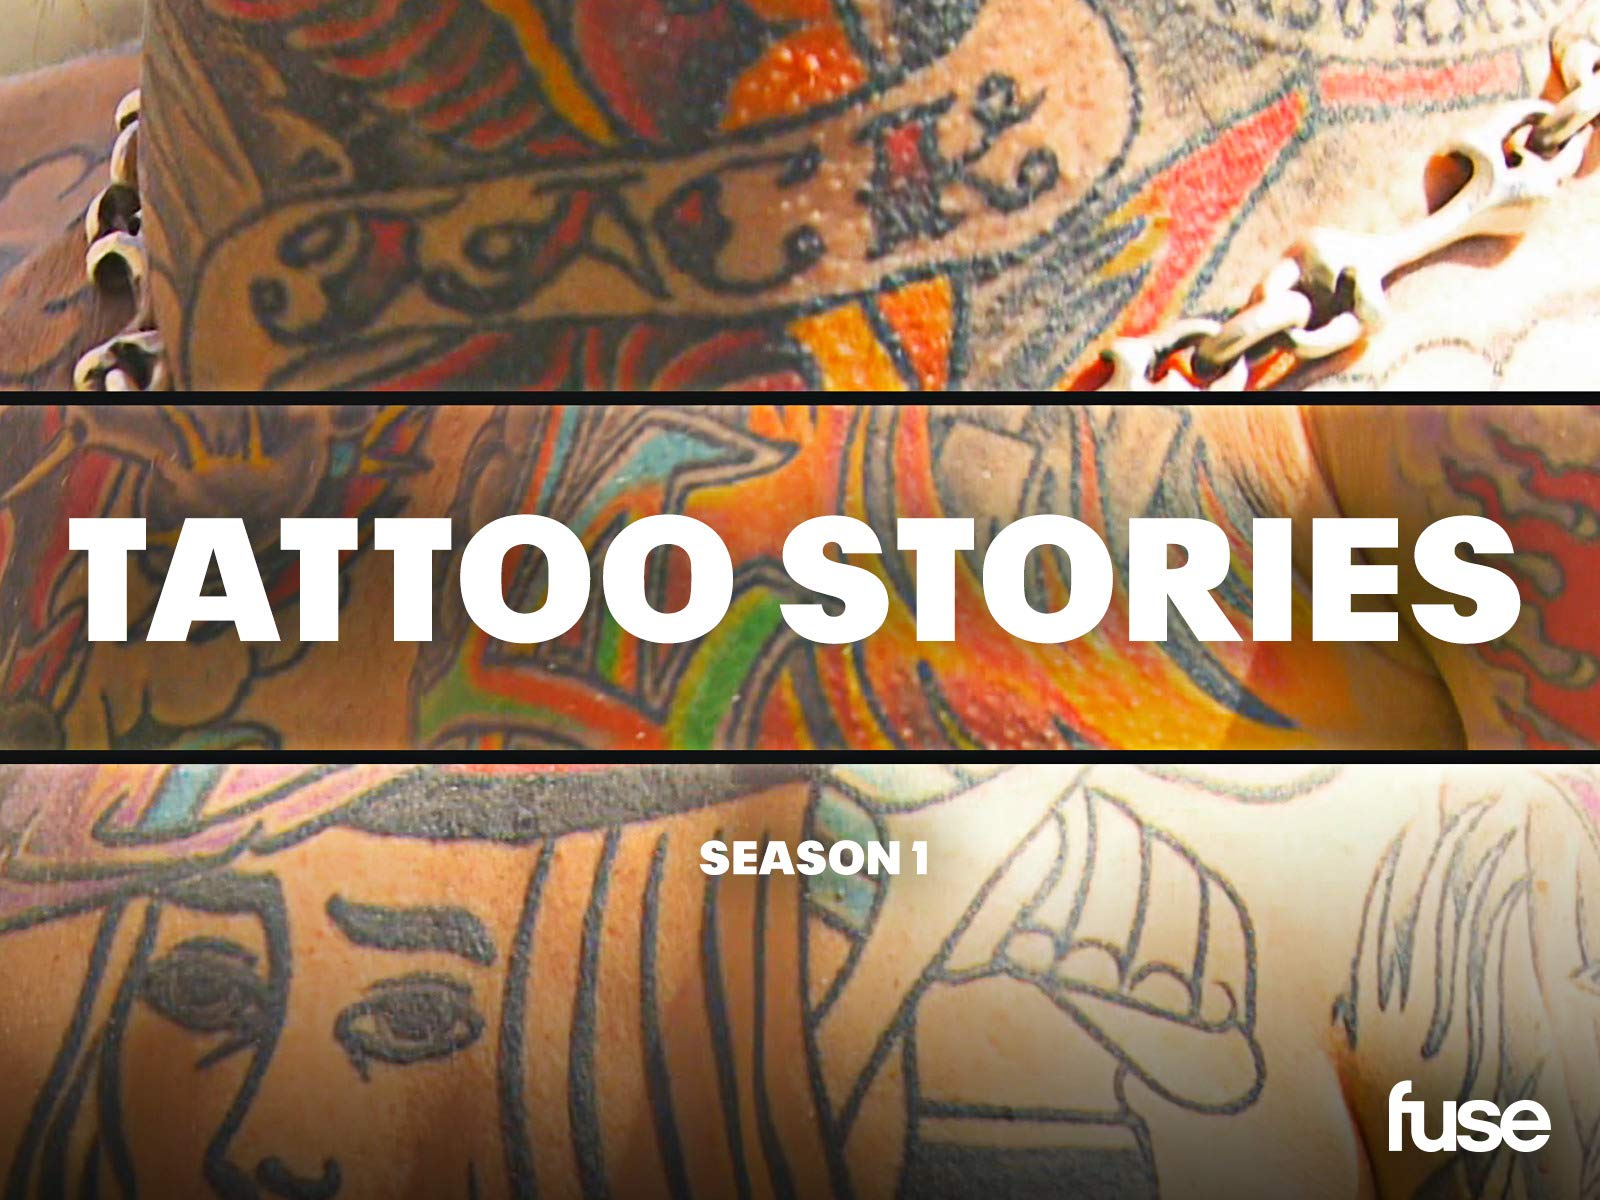 Tattoo Stories - Season 1